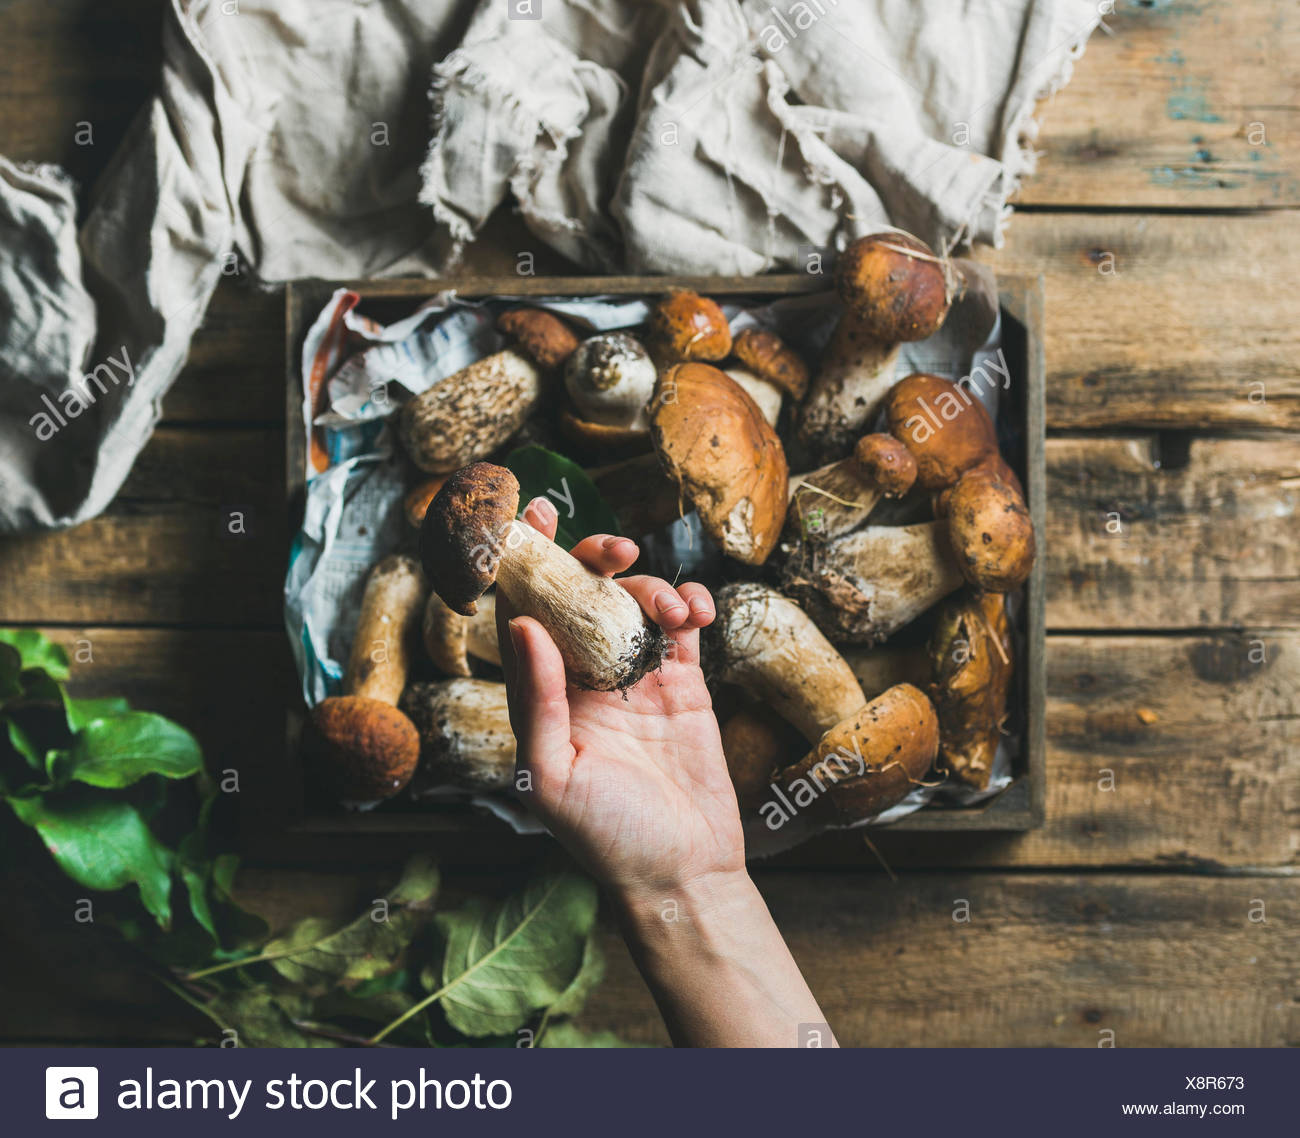 Fresh picked Porcini mushrooms in wooden tray over rustic background and woman's hand holding one penny ben, top view - Stock Image